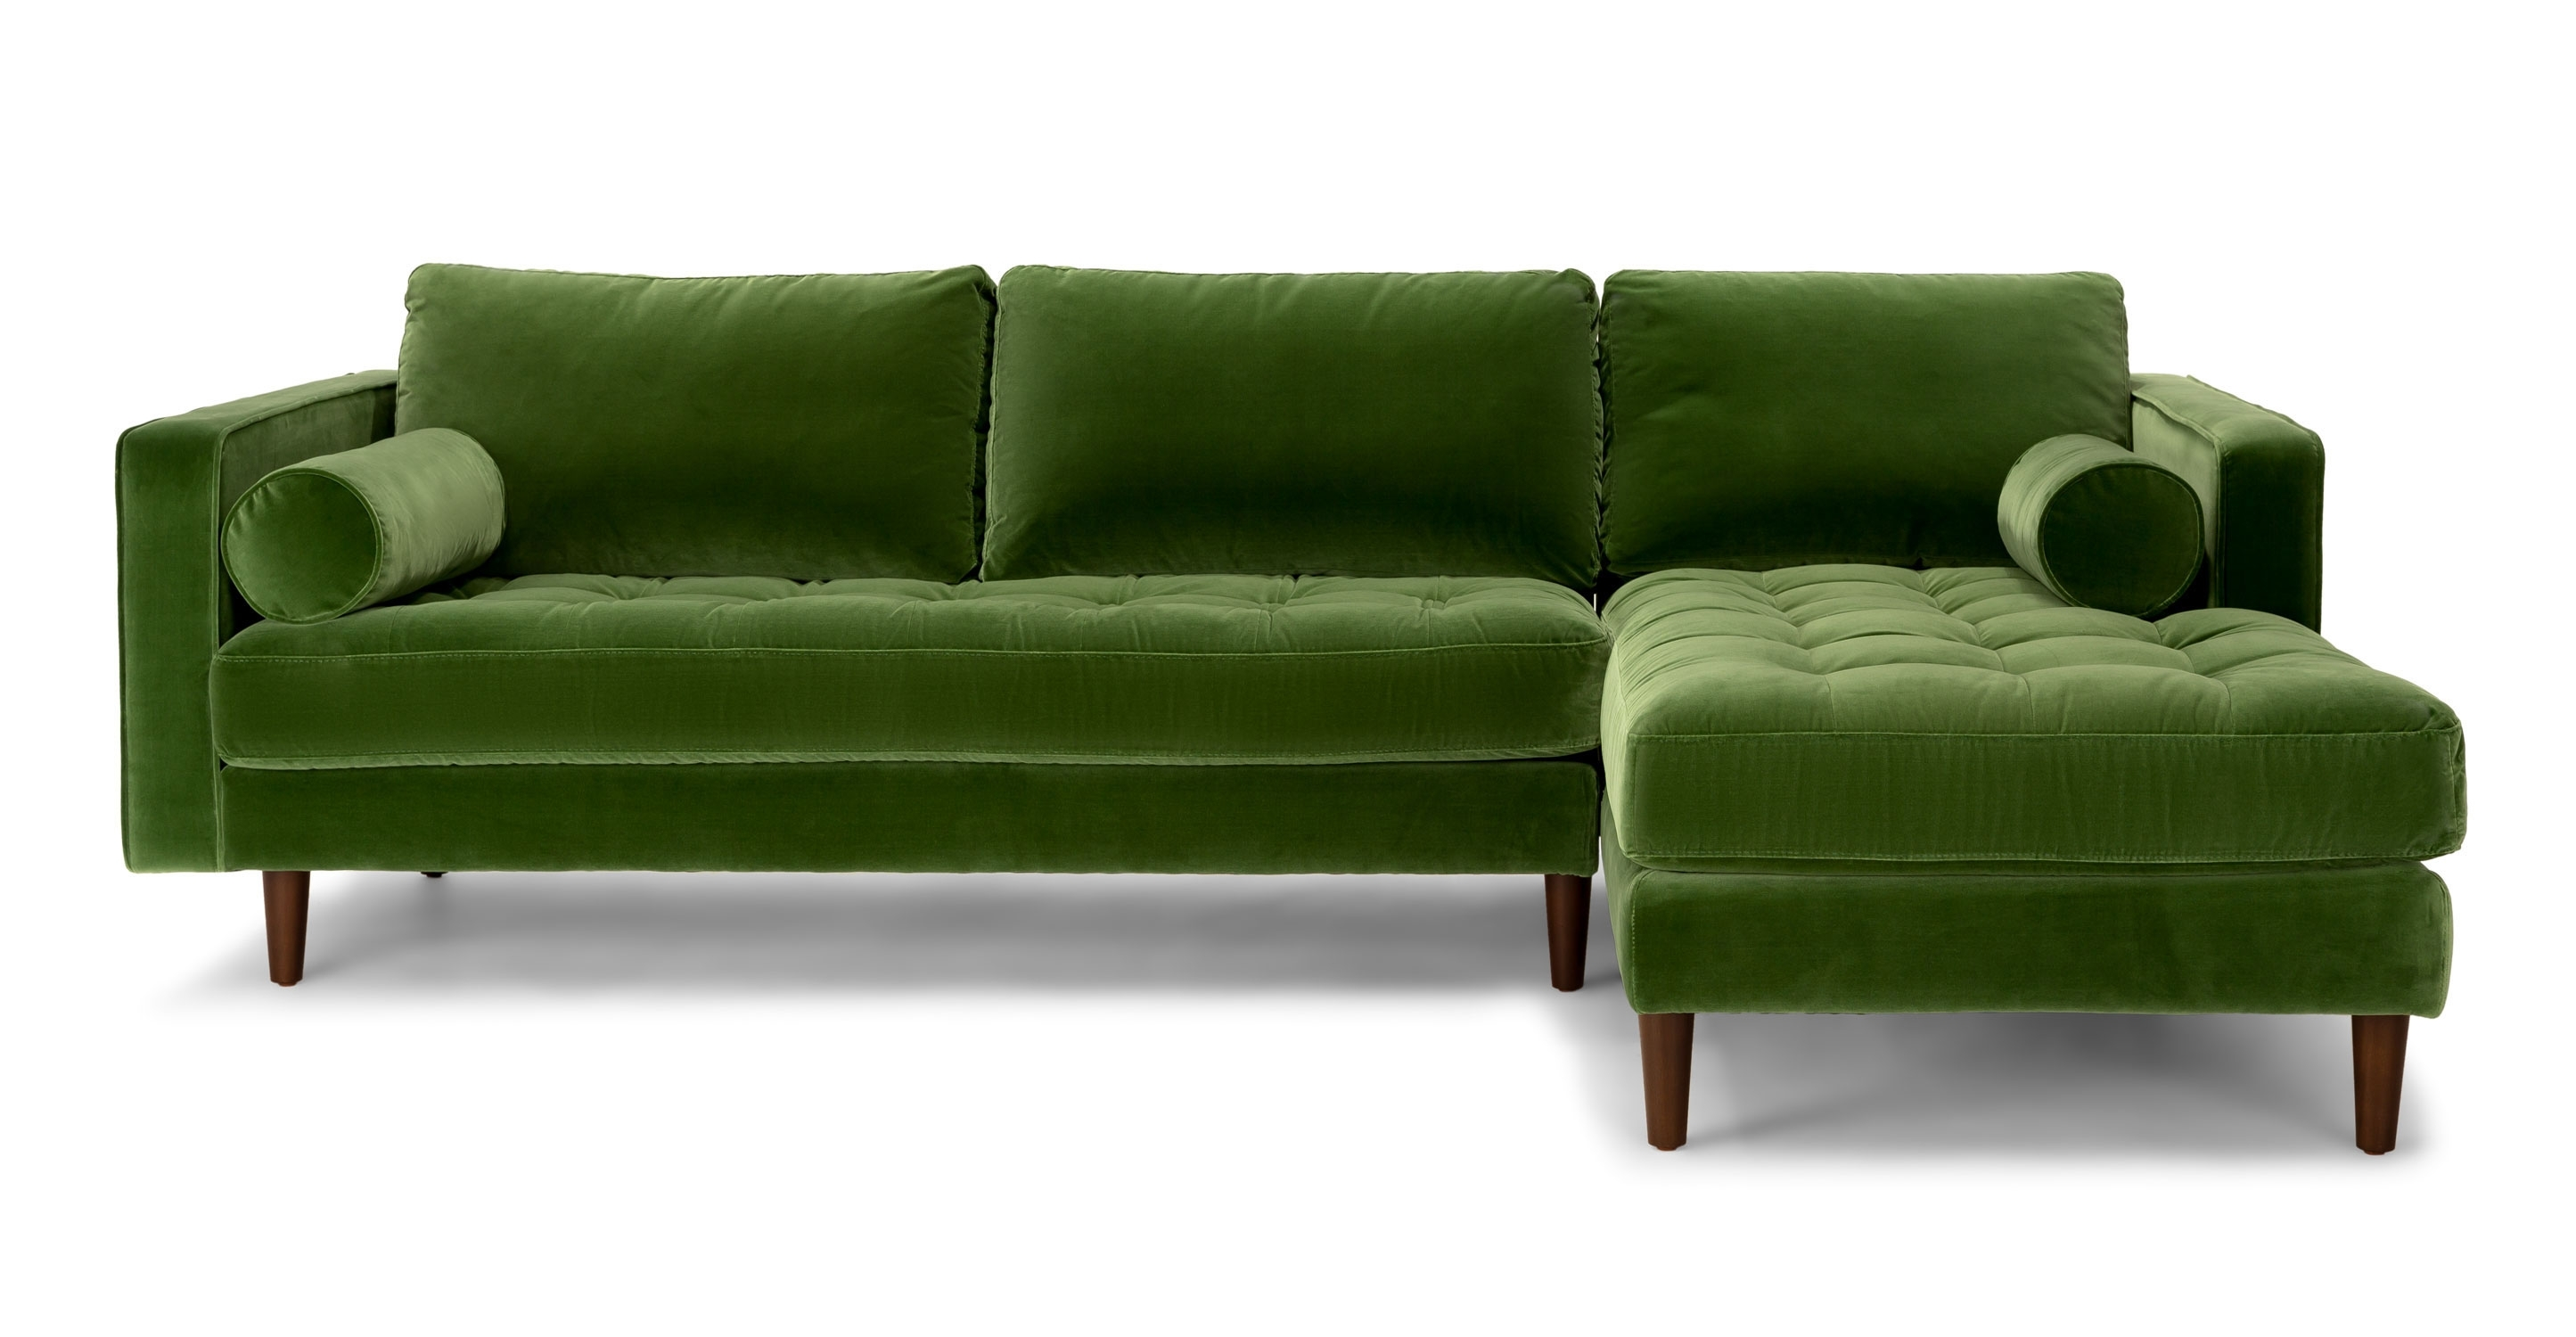 Excellent Sofa On Sale On Green Sectional Sofa Easy As Chesterfield With Regard To Green Sectional Sofas (View 3 of 10)